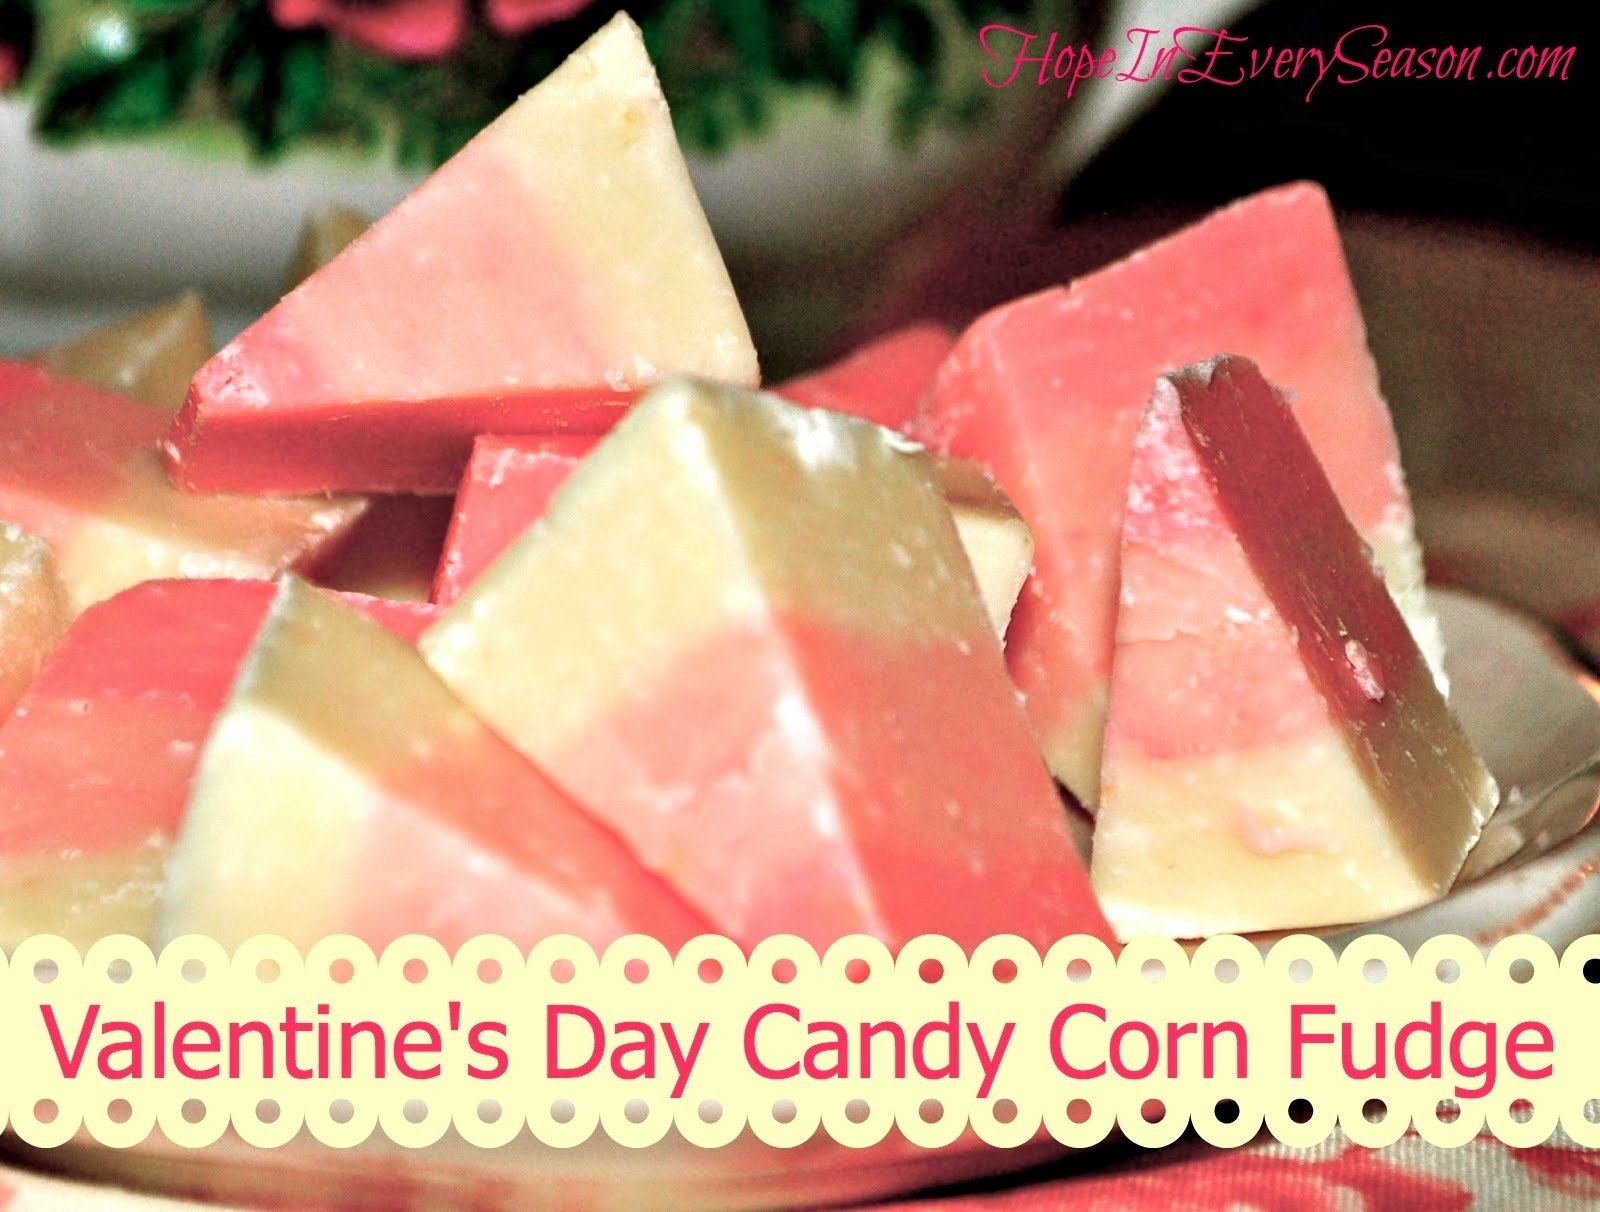 Valentine's Day Candy Corn Fudge for the Homemaking Party